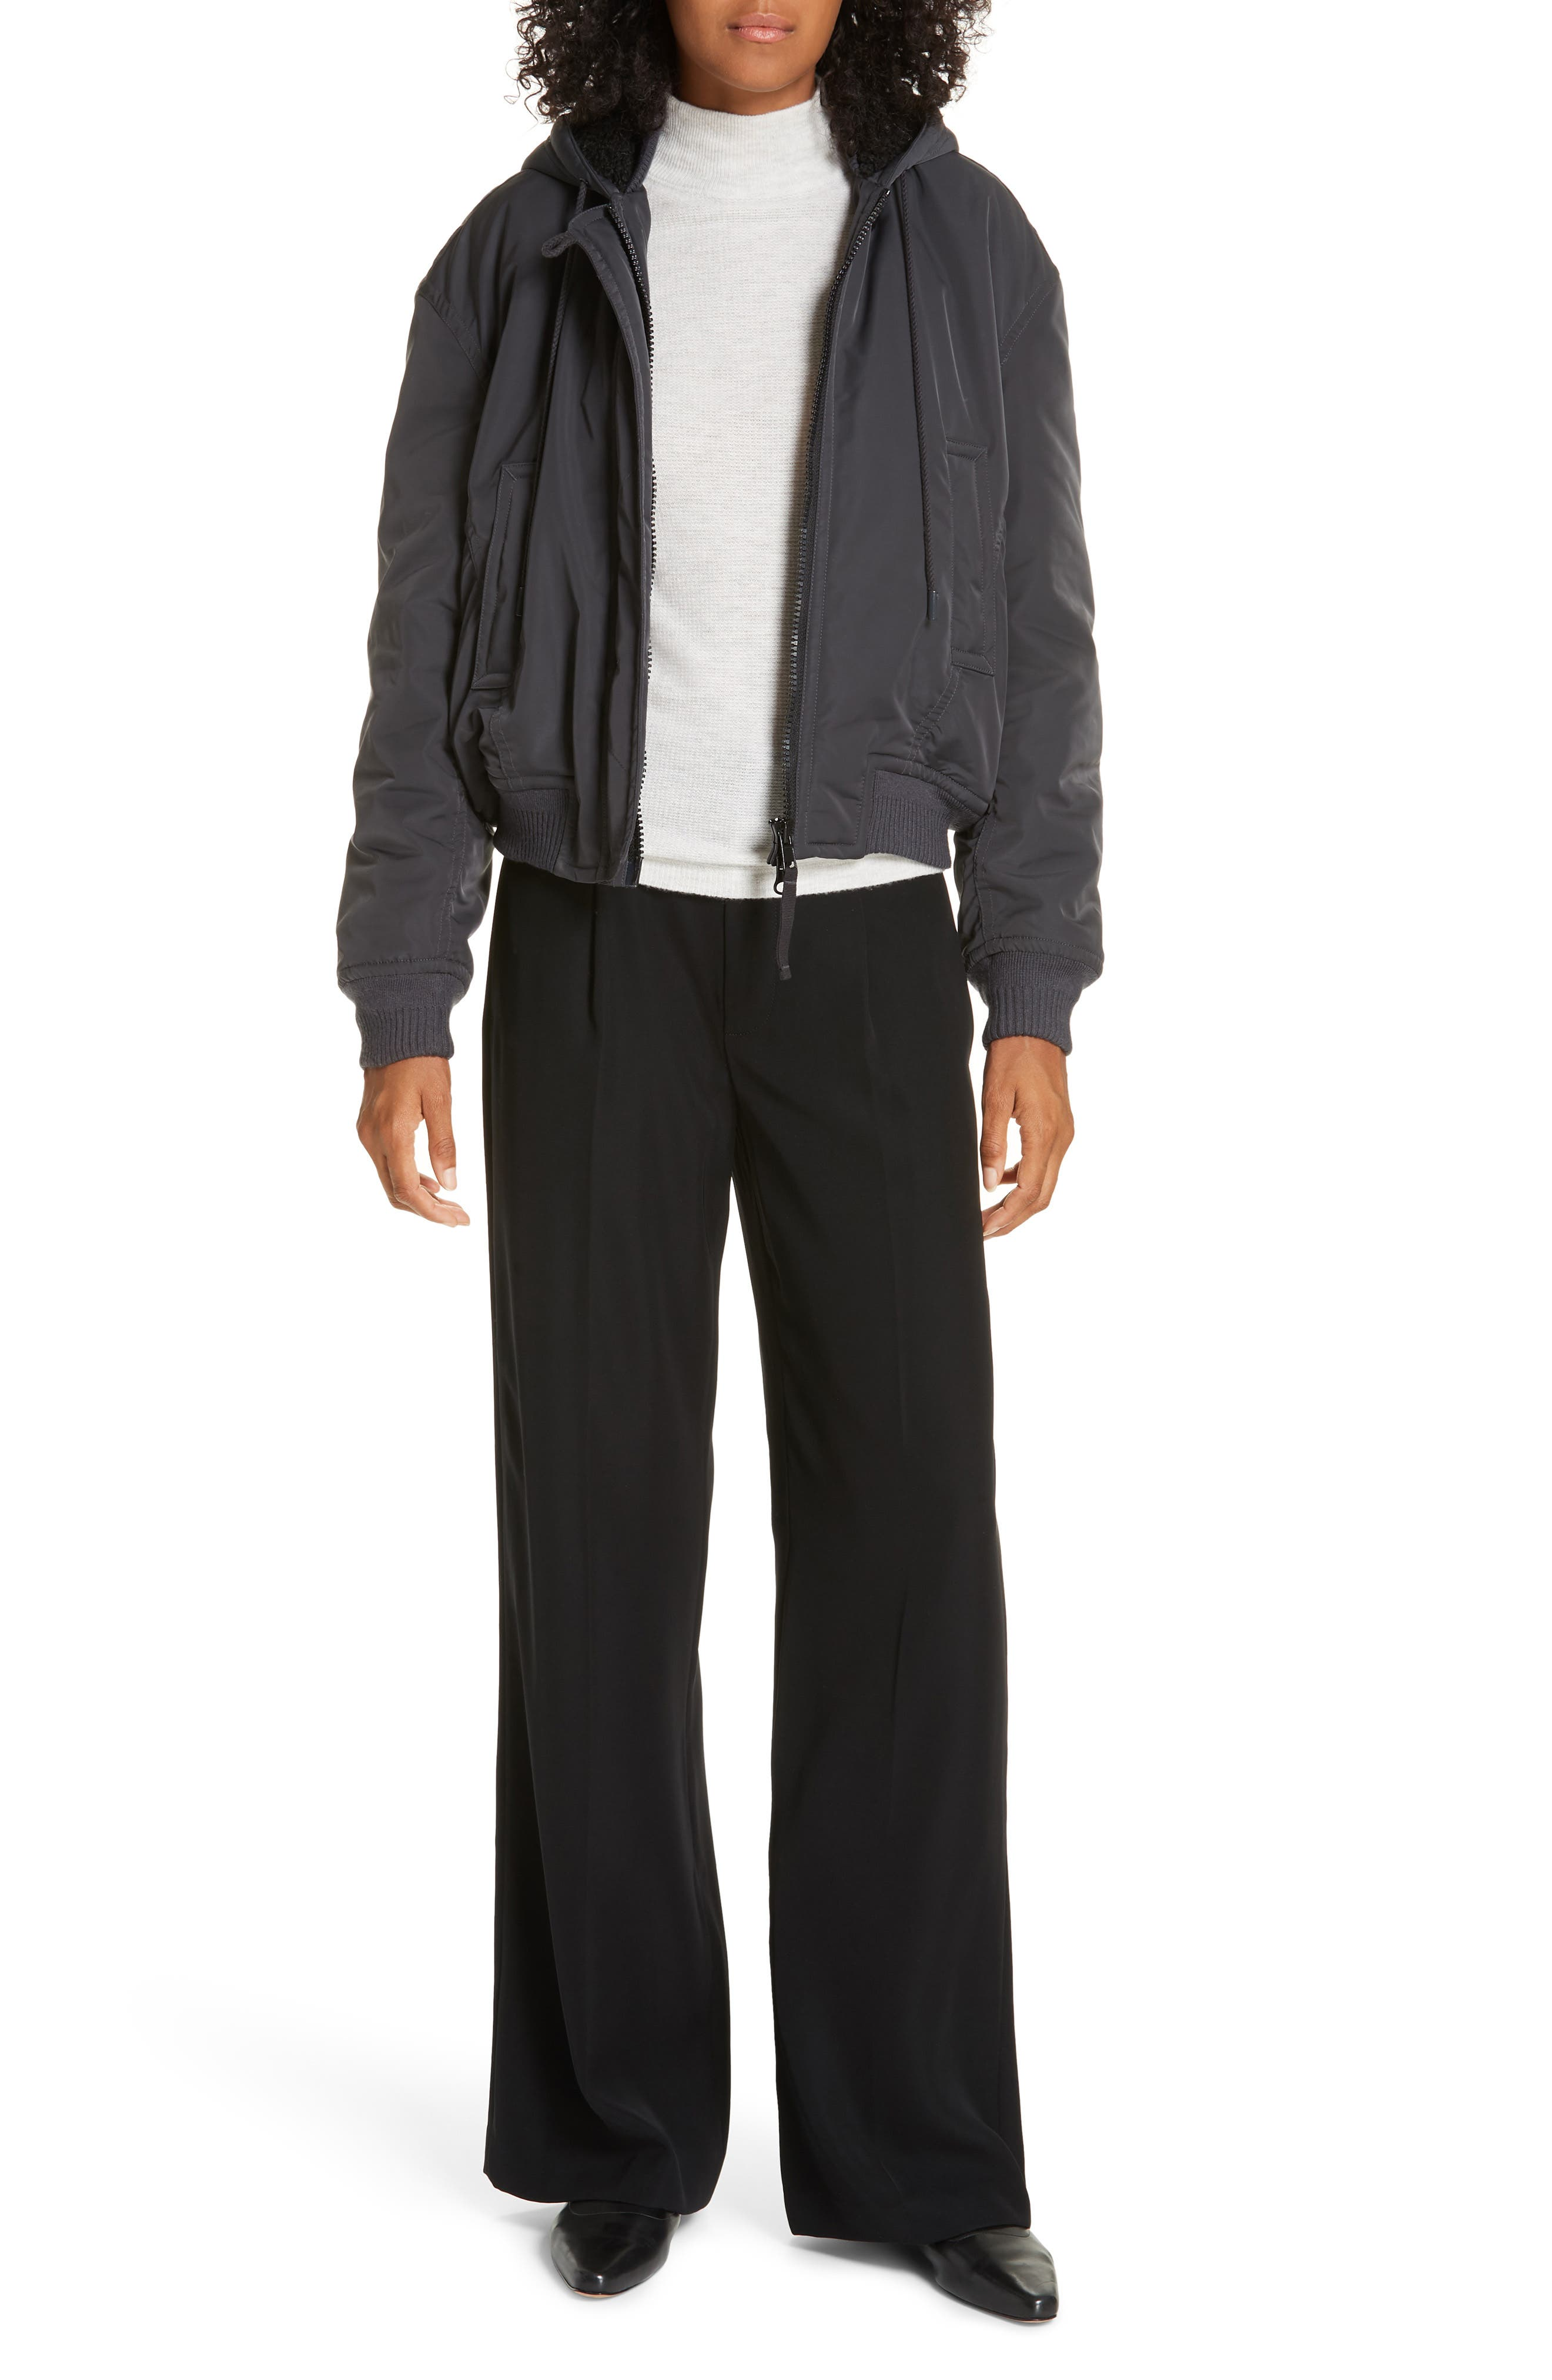 VINCE, Relaxed Wide Leg Trousers, Alternate thumbnail 8, color, BLACK